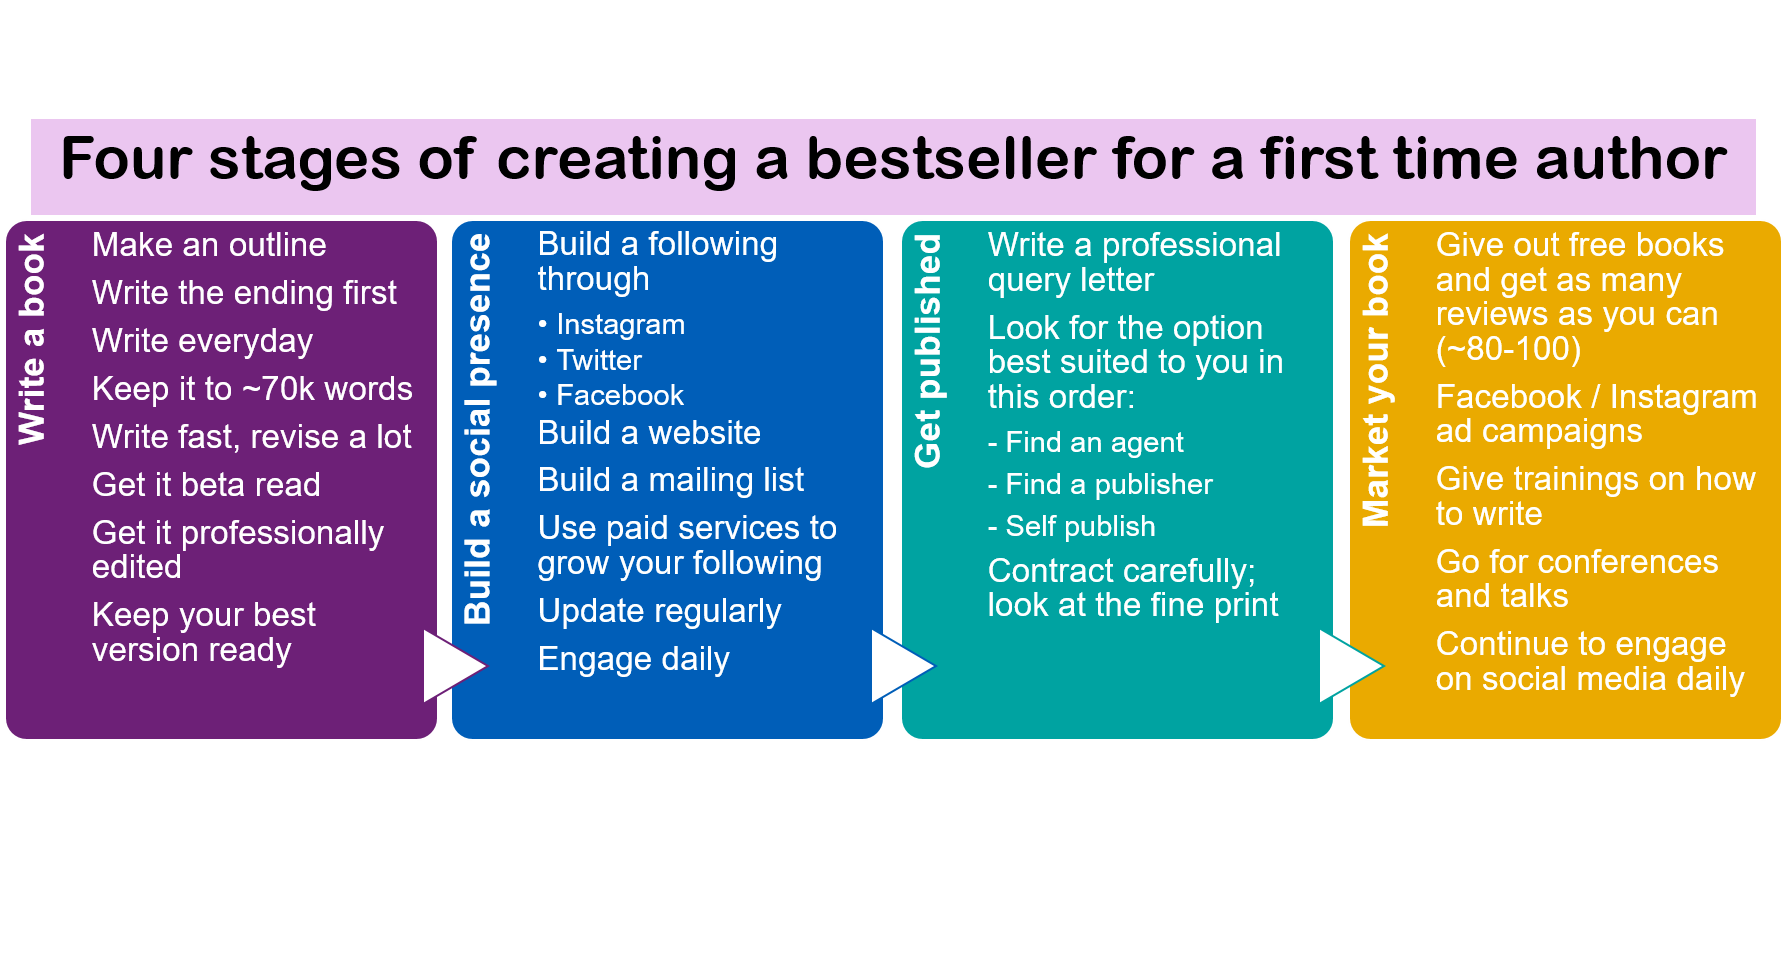 How to write a bestseller book in India - Quora